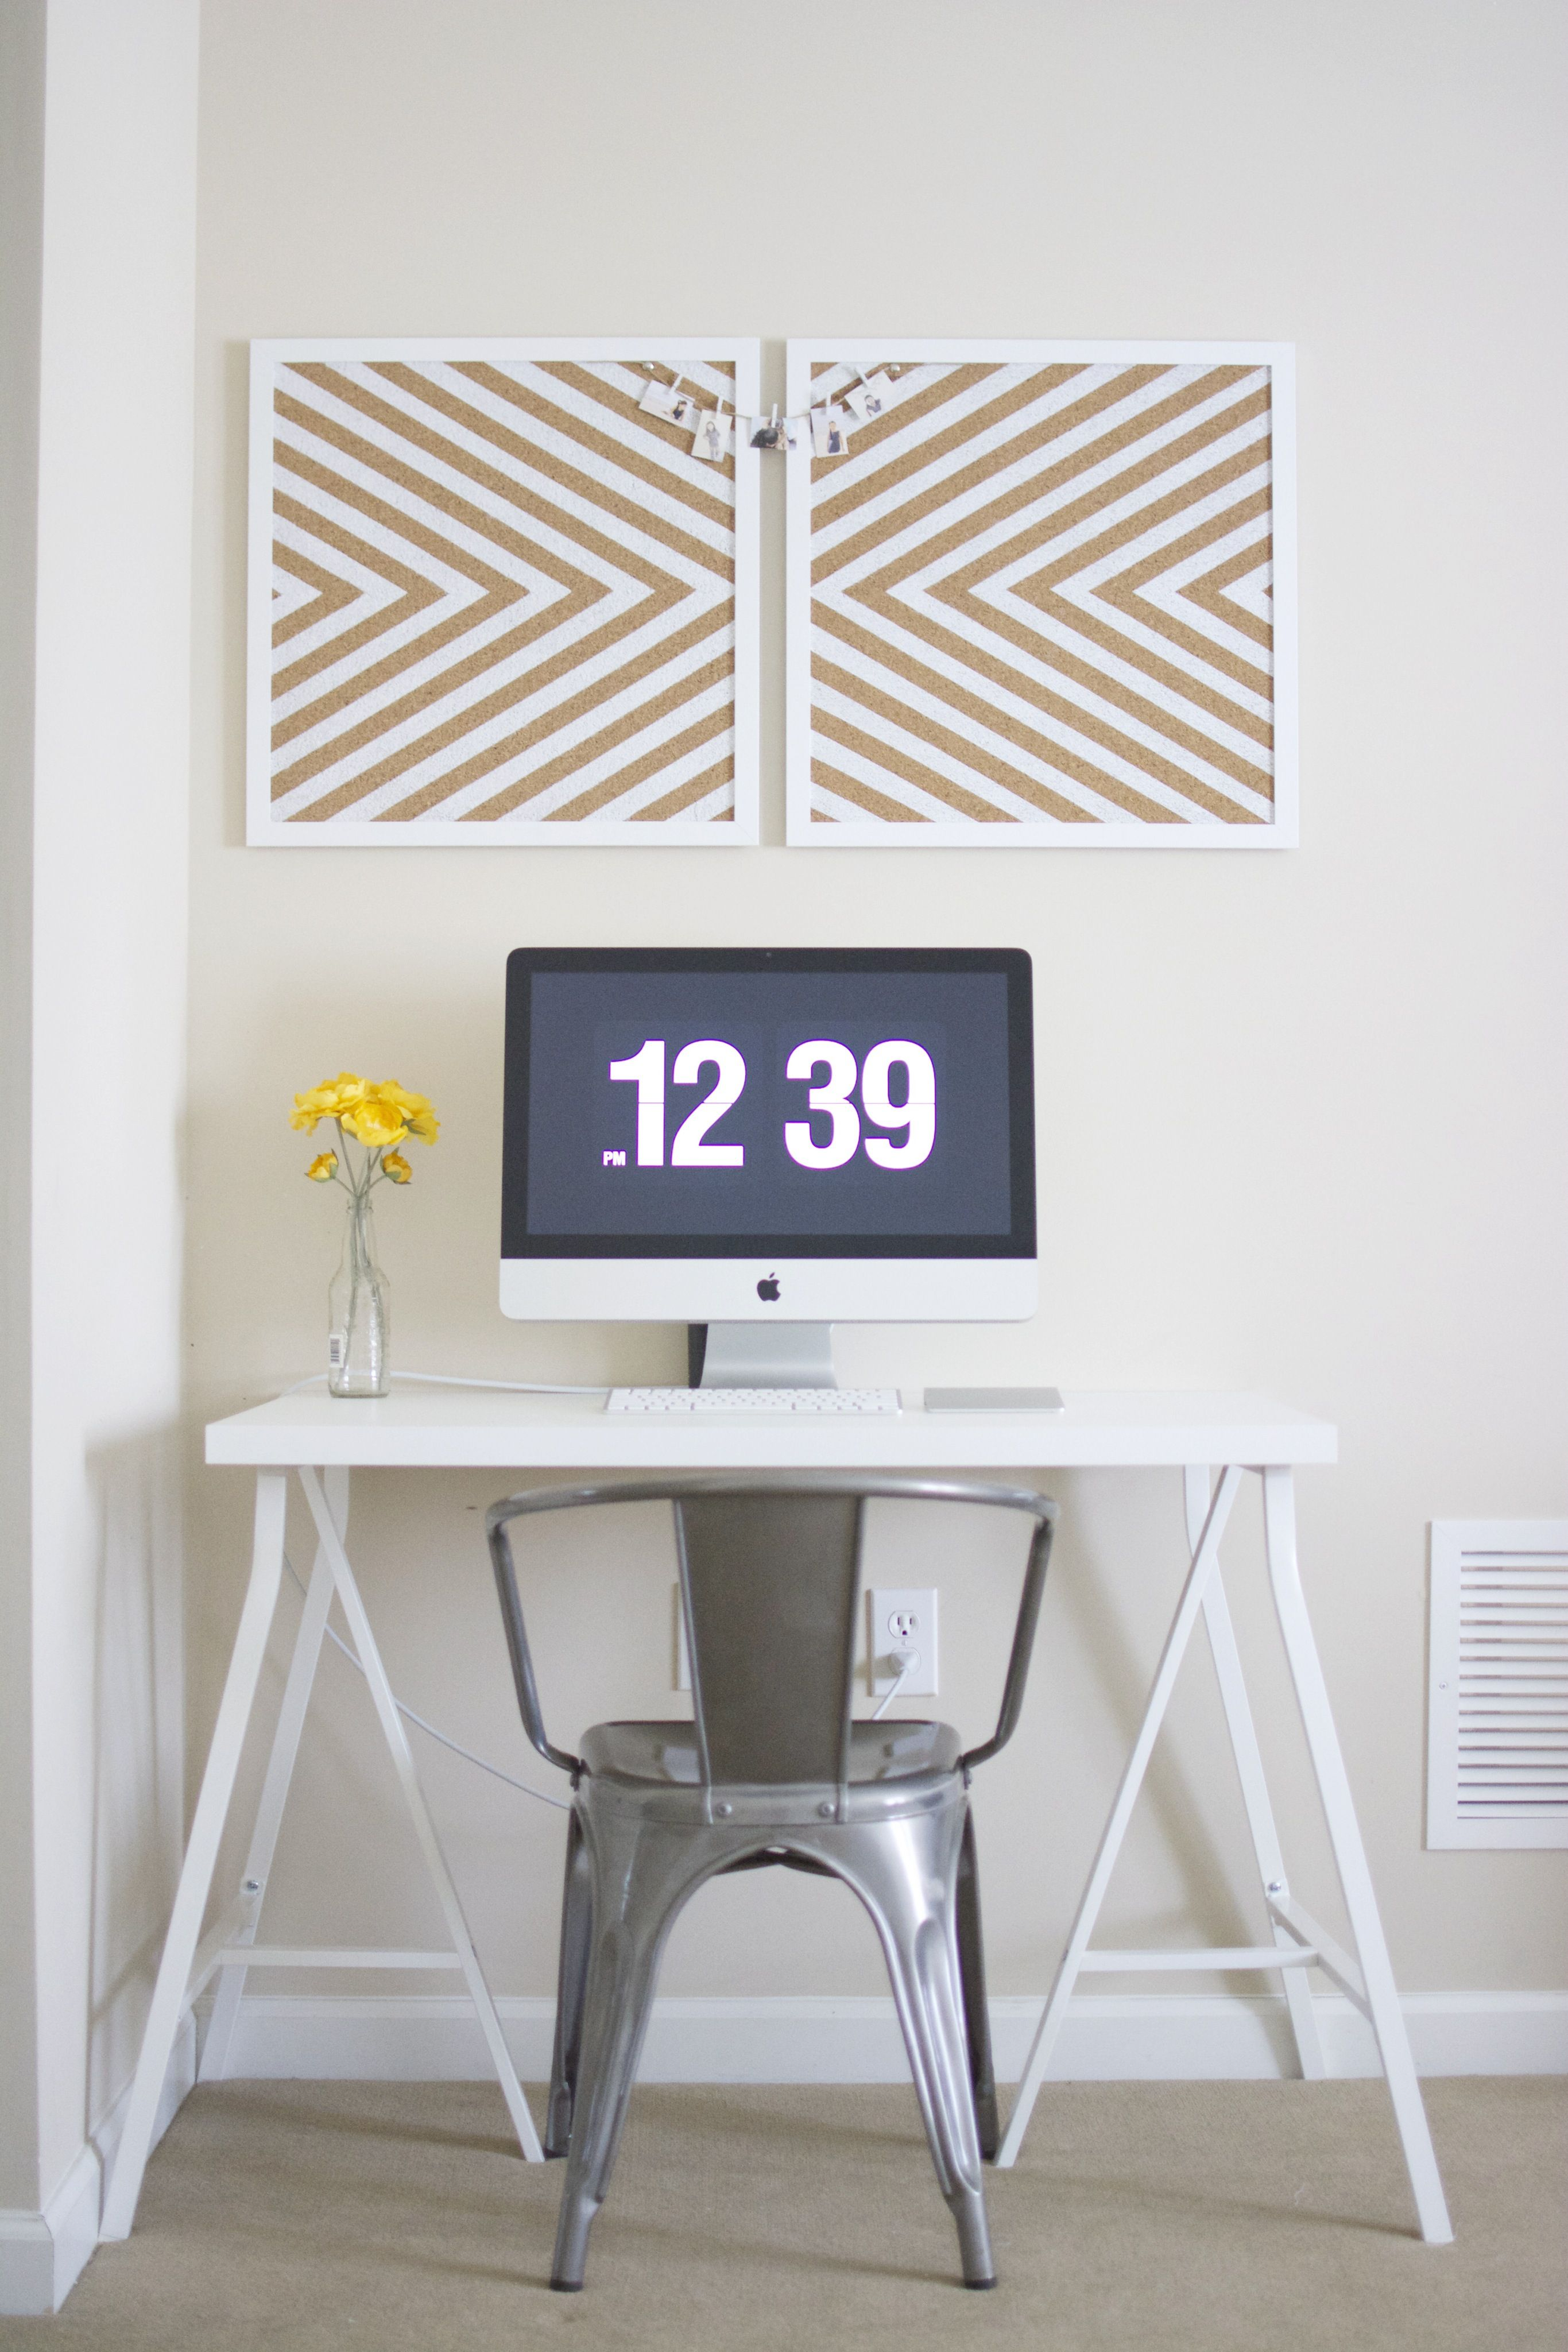 Industrial Chairs Target Folding Chair Cane Diy Painted Corkboard Ikea Linnmon Table Top And Lerberg